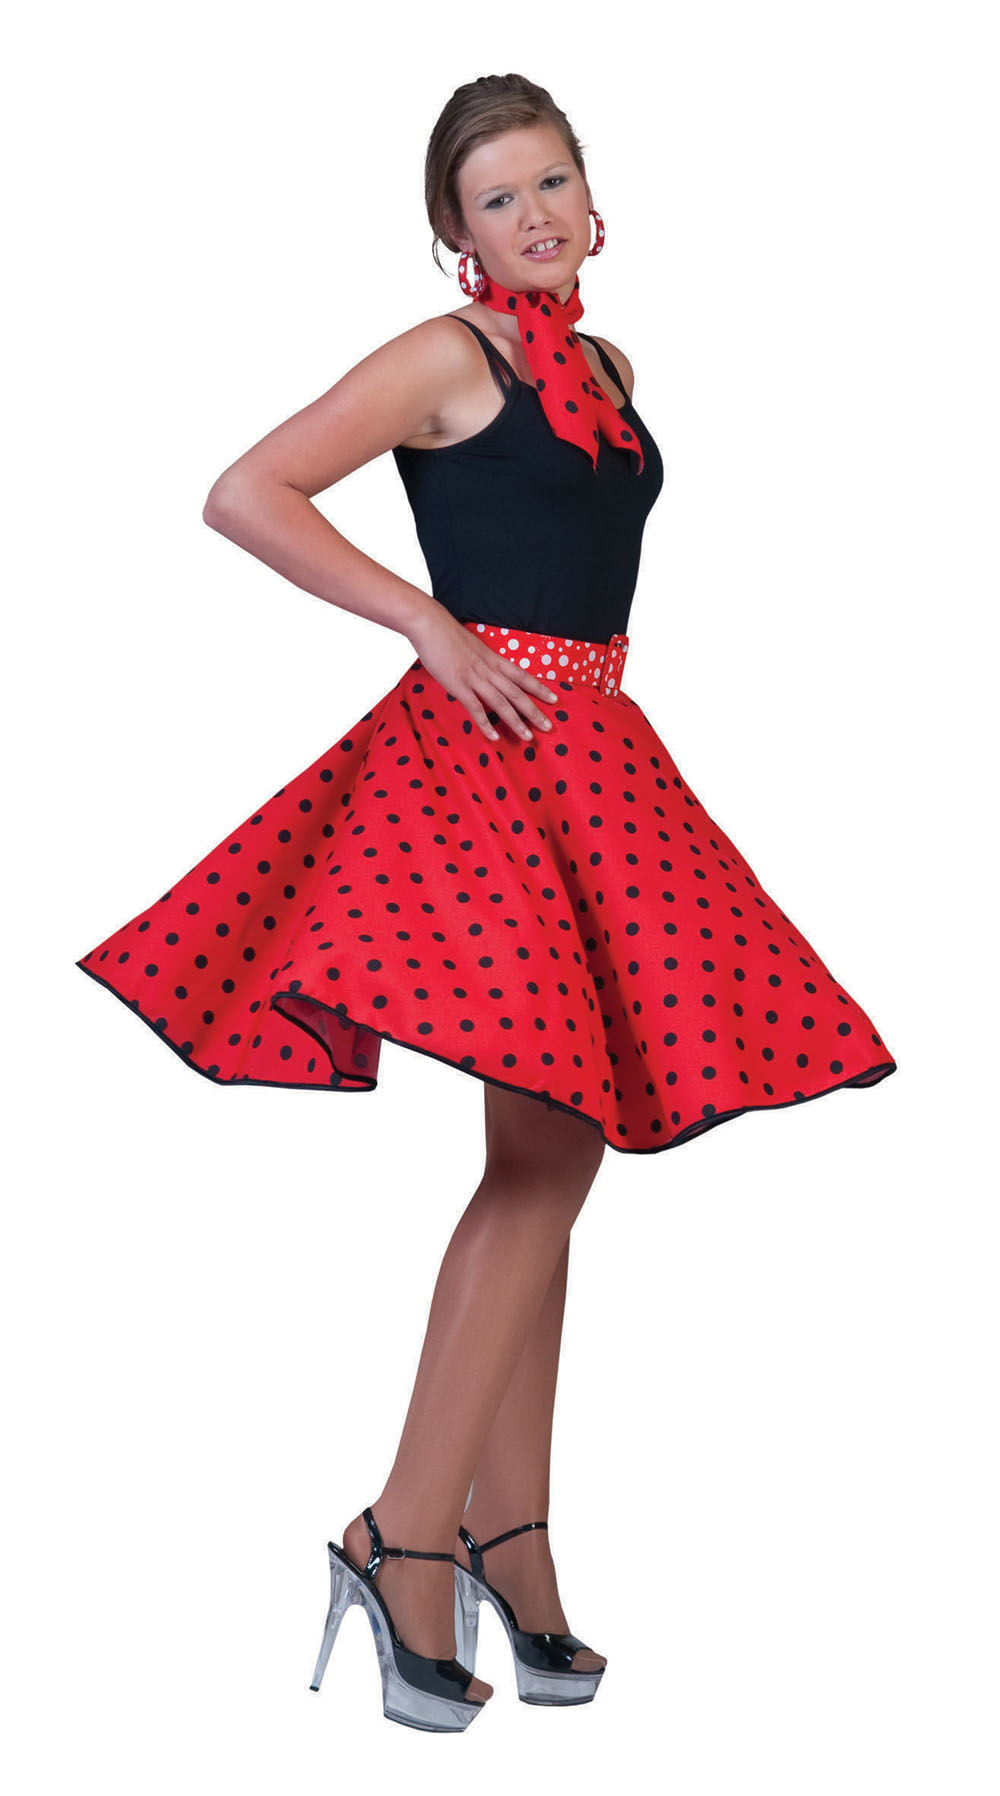 Red rock'n roll skirt